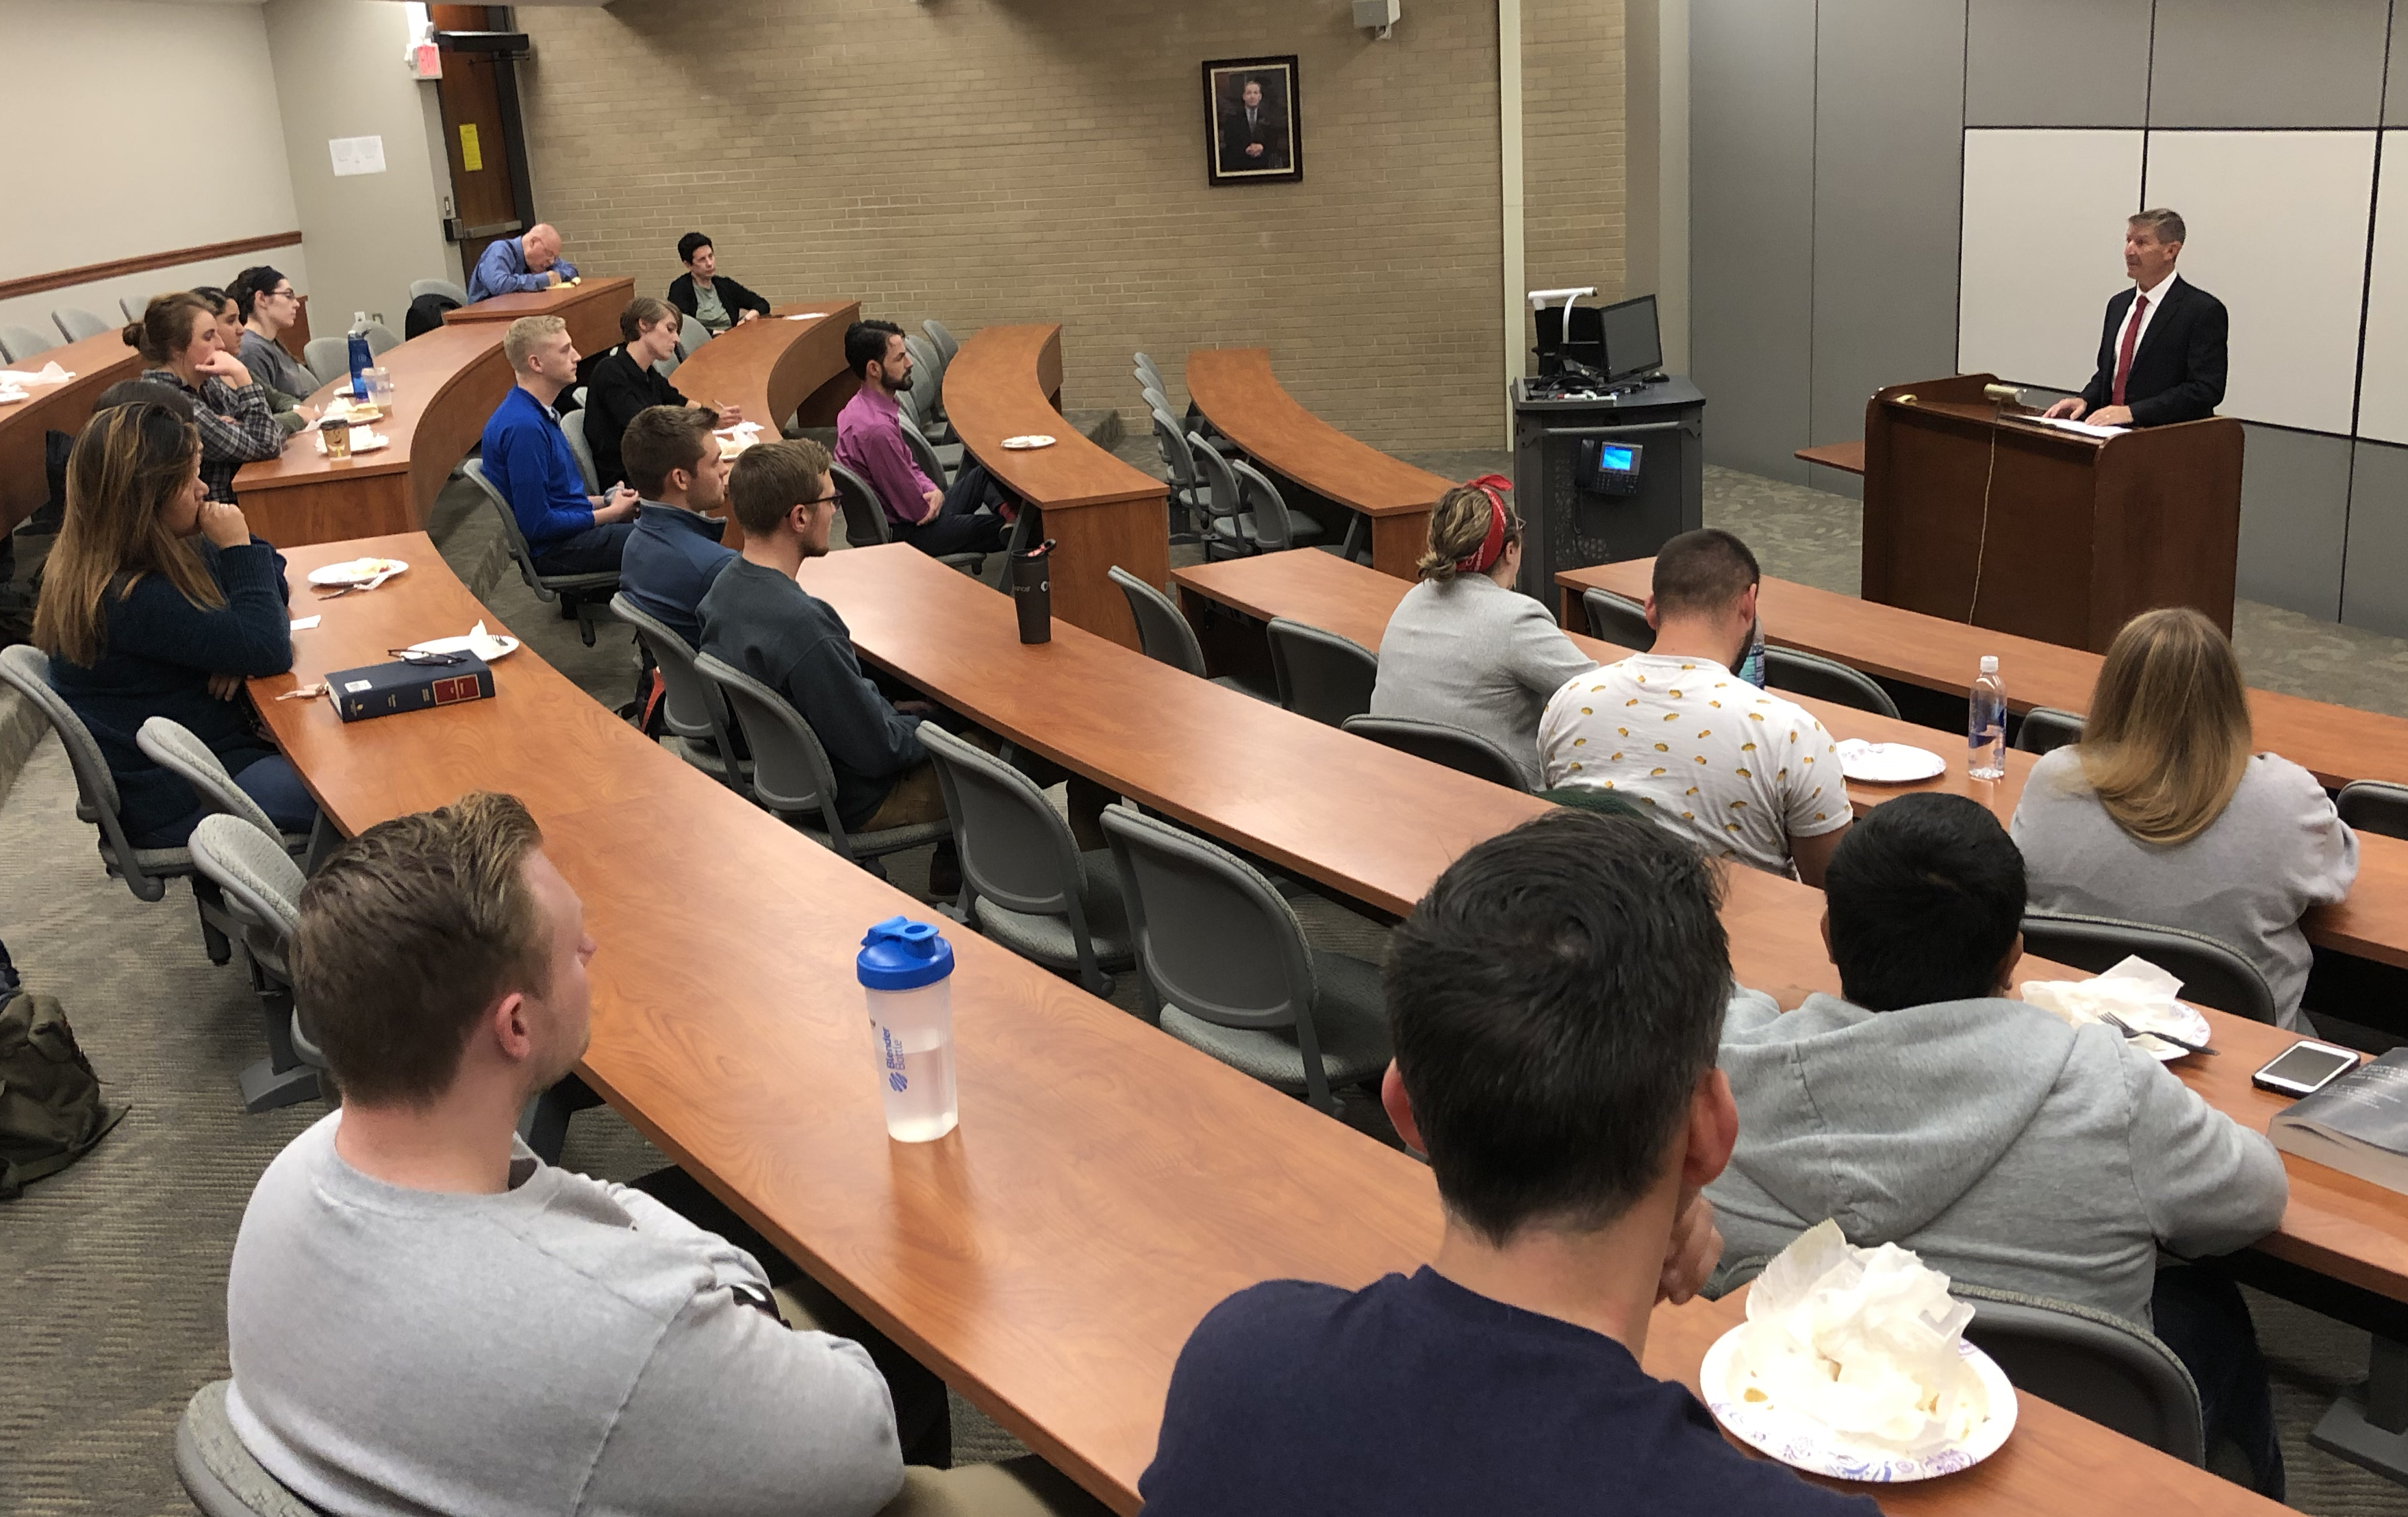 Eighth Circuit Court of Appeals Judge L. Steven Grasz speaks about appellate practice to a group of Creighton University School of Law students on Thursday, Oct. 3, 2019. (Photo by Scott Stewart)